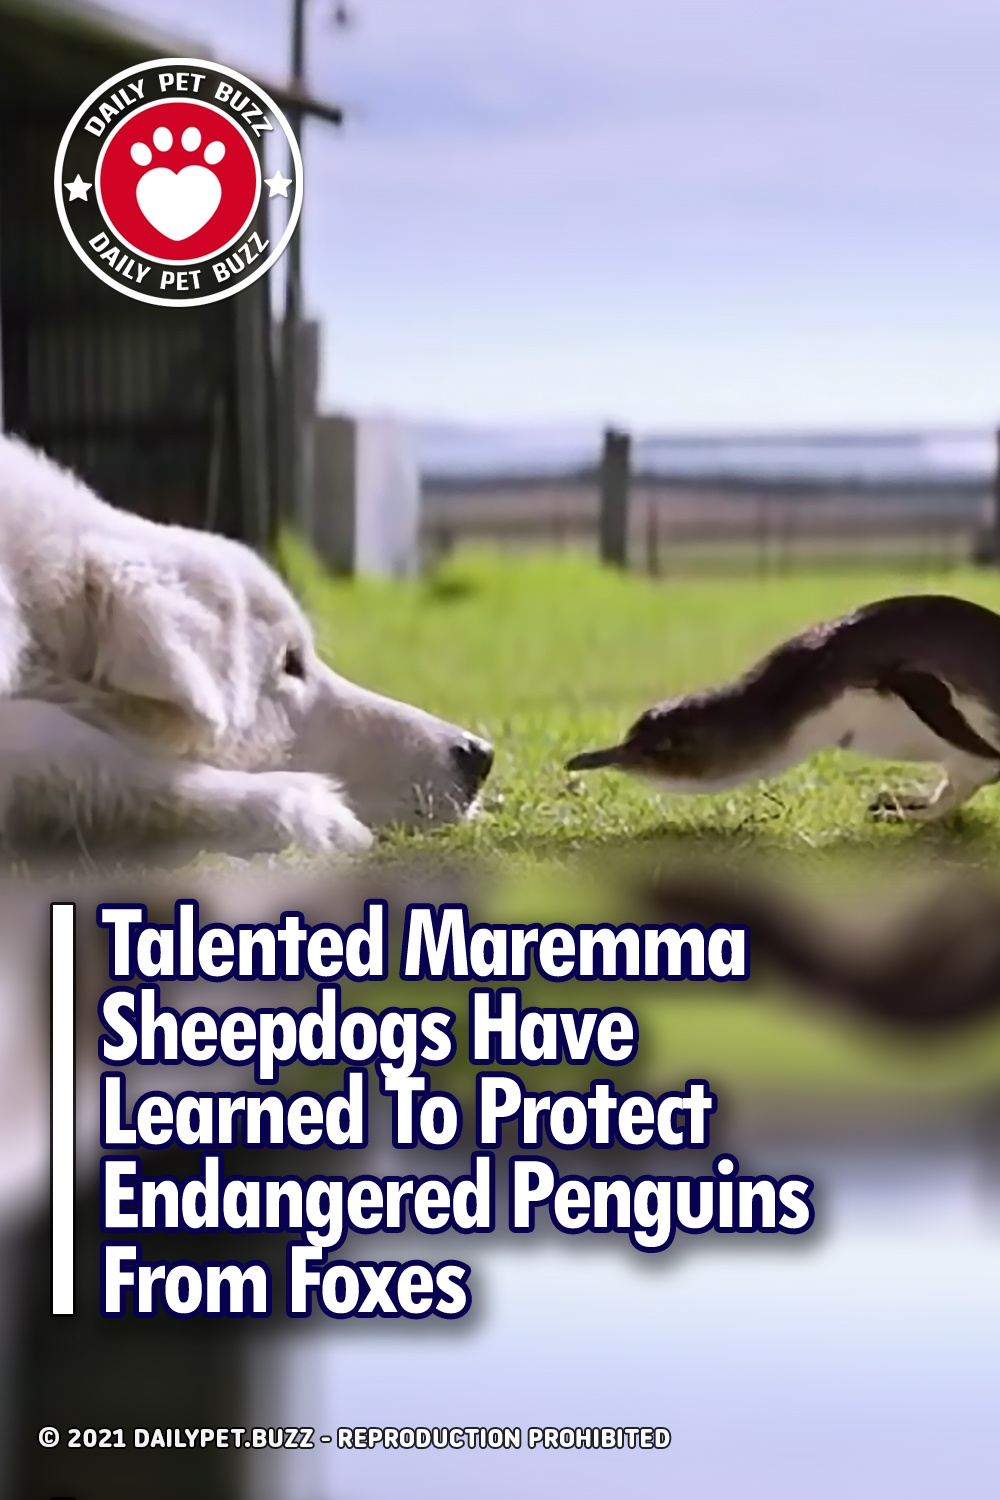 Talented Maremma Sheepdogs Have Learned To Protect Endangered Penguins From Foxes